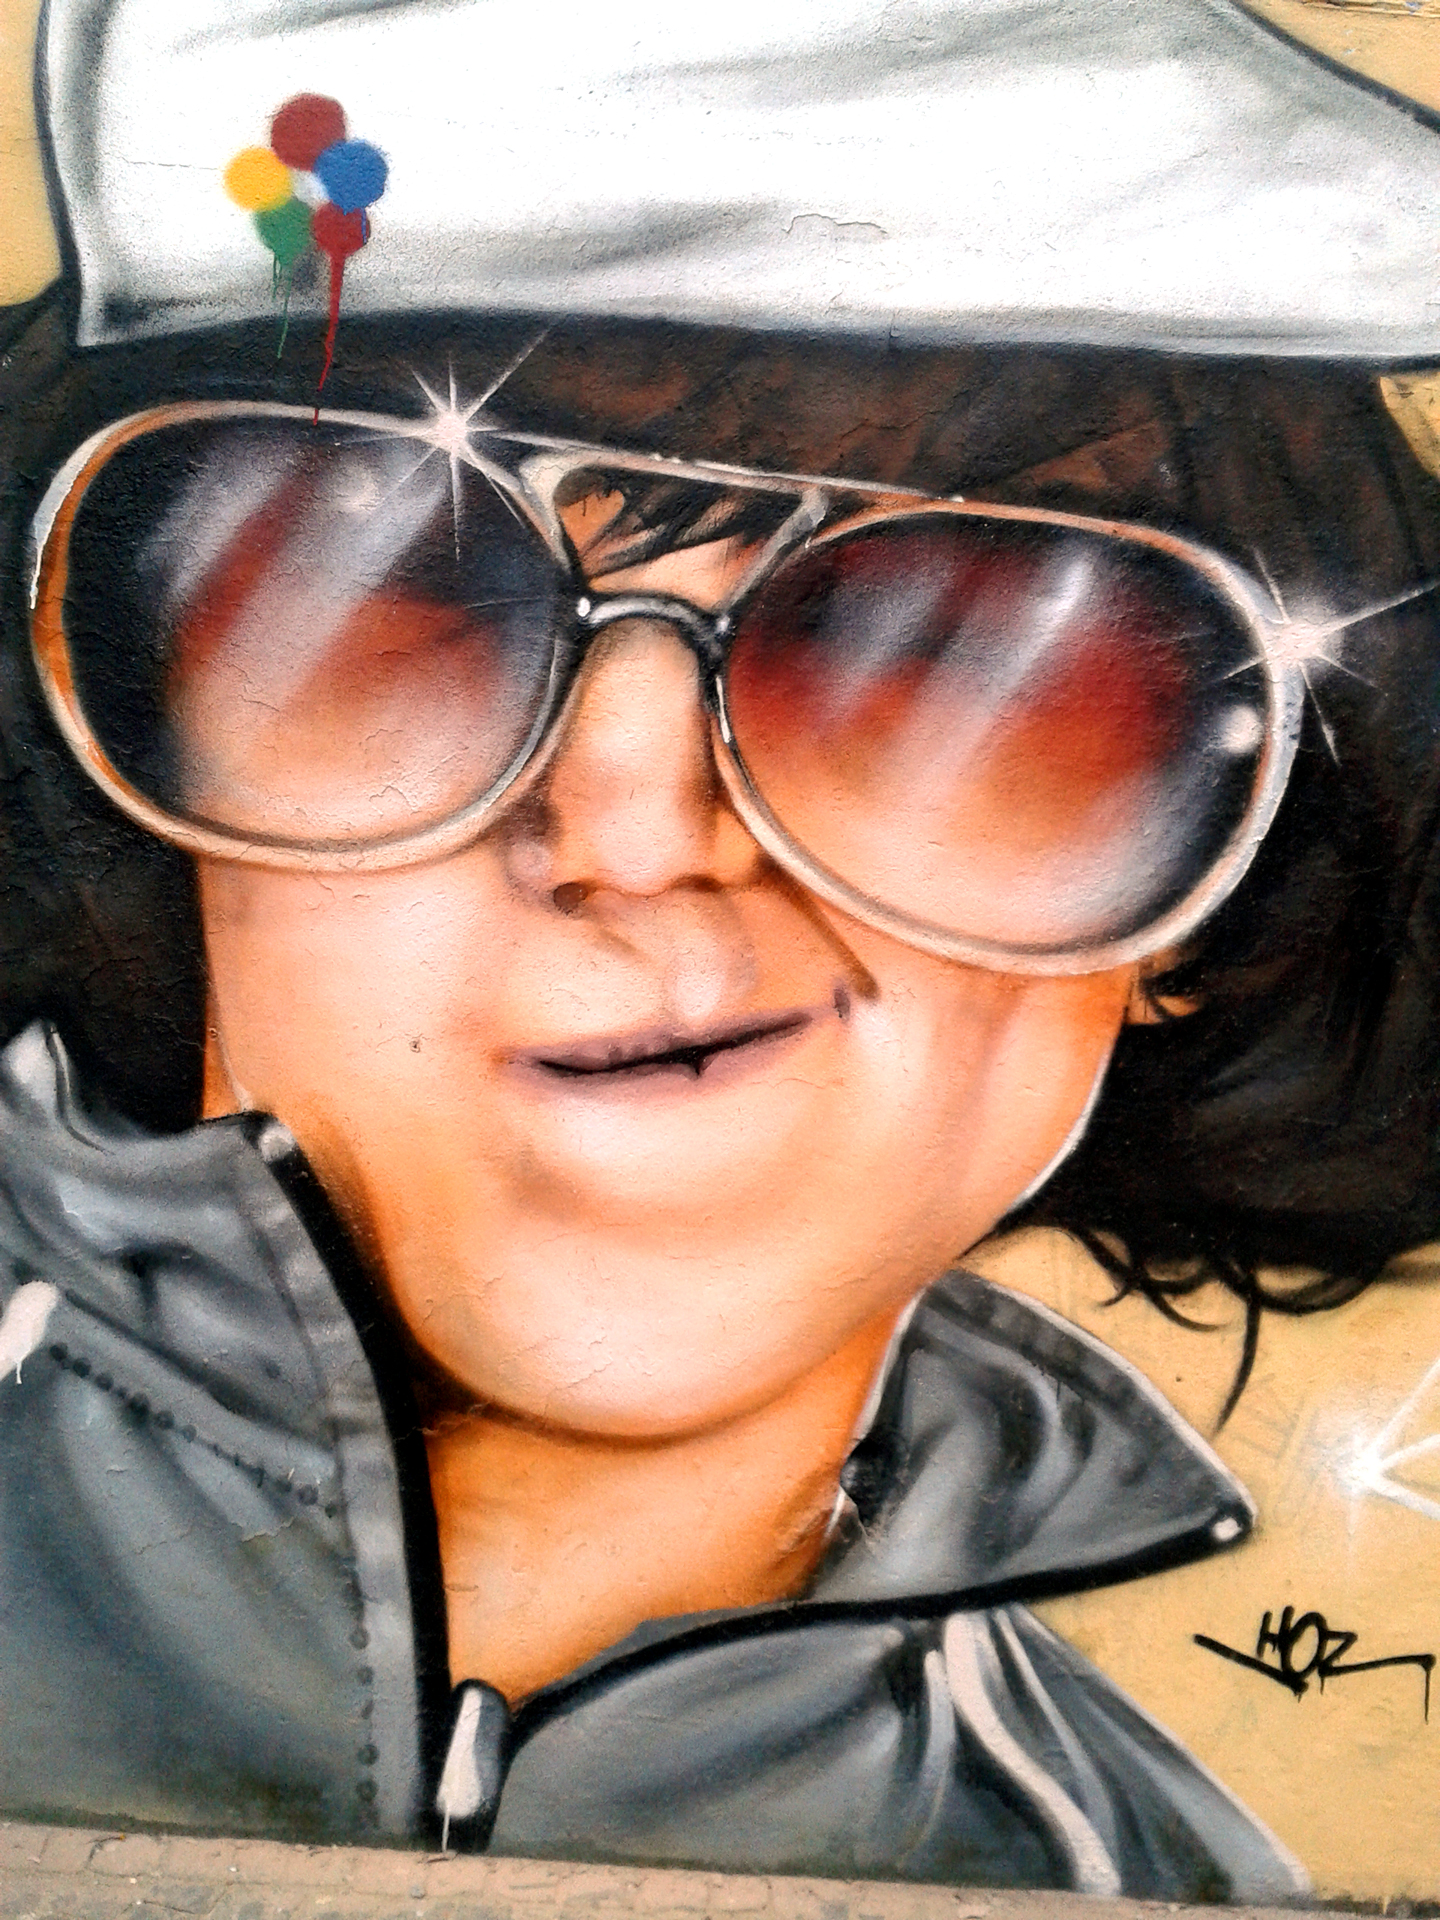 Portrait Graffiti Par HOZ